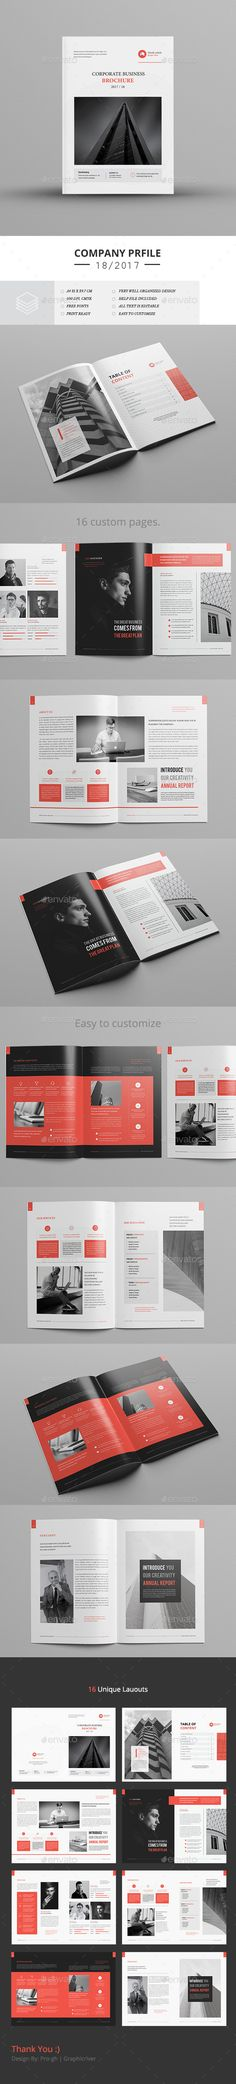 Company Profile — InDesign INDD #us letter #unique • Available here → https://graphicriver.net/item/company-profile/19561078?ref=pxcr